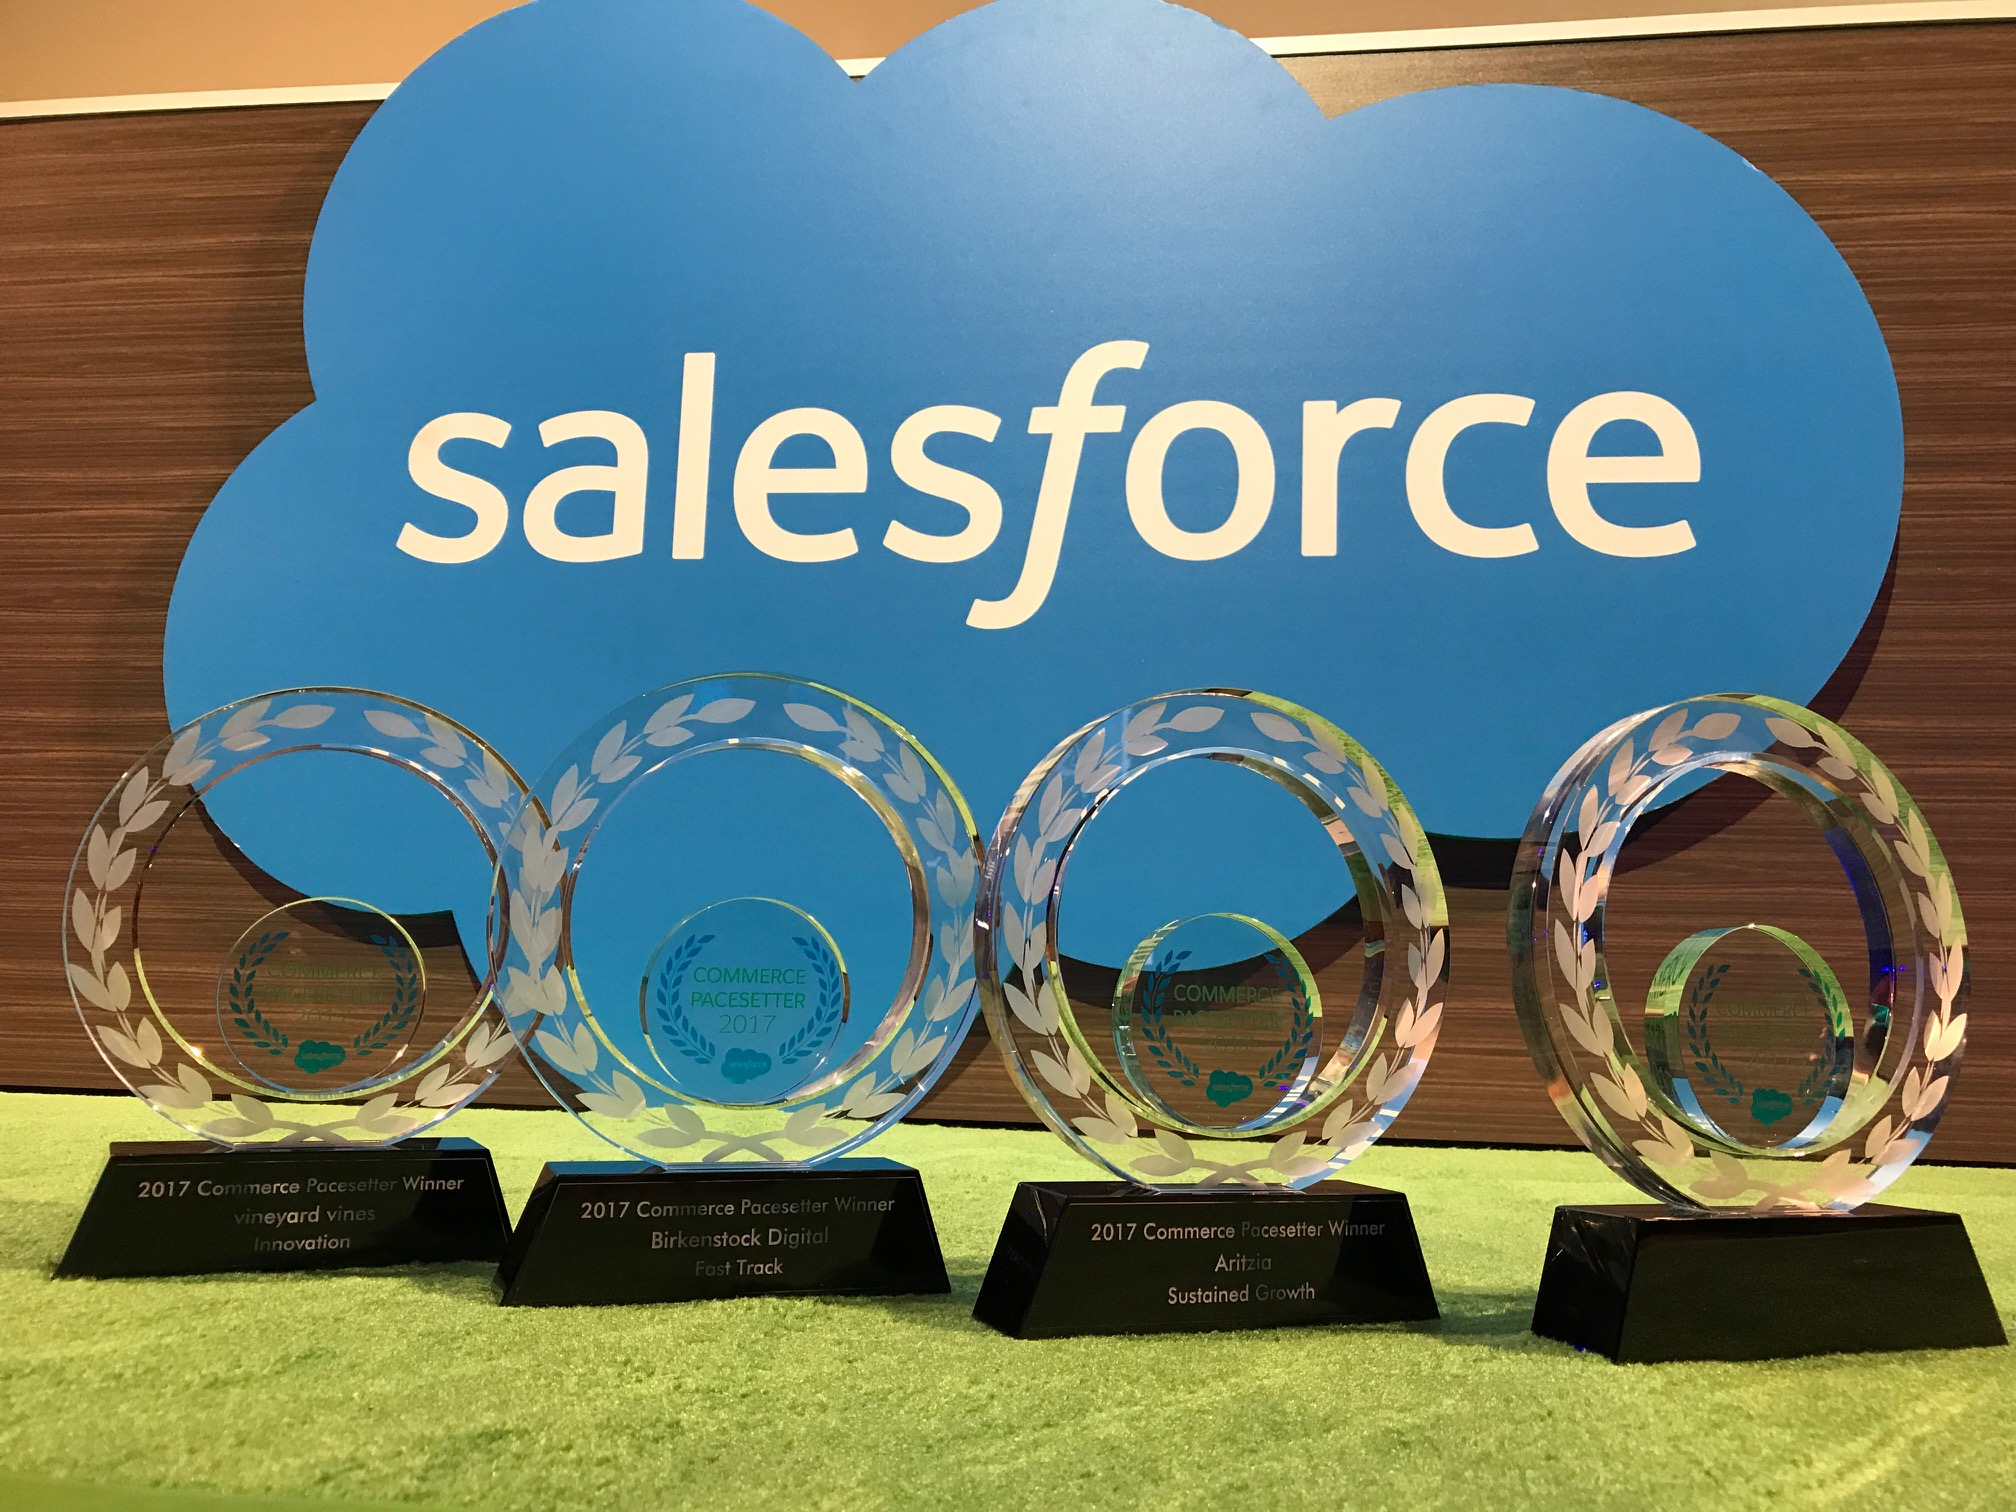 Aritzia, BIRKENSTOCK and Vineyard Vines Explain How They Innovate and Grow With Salesforce Commerce Cloud